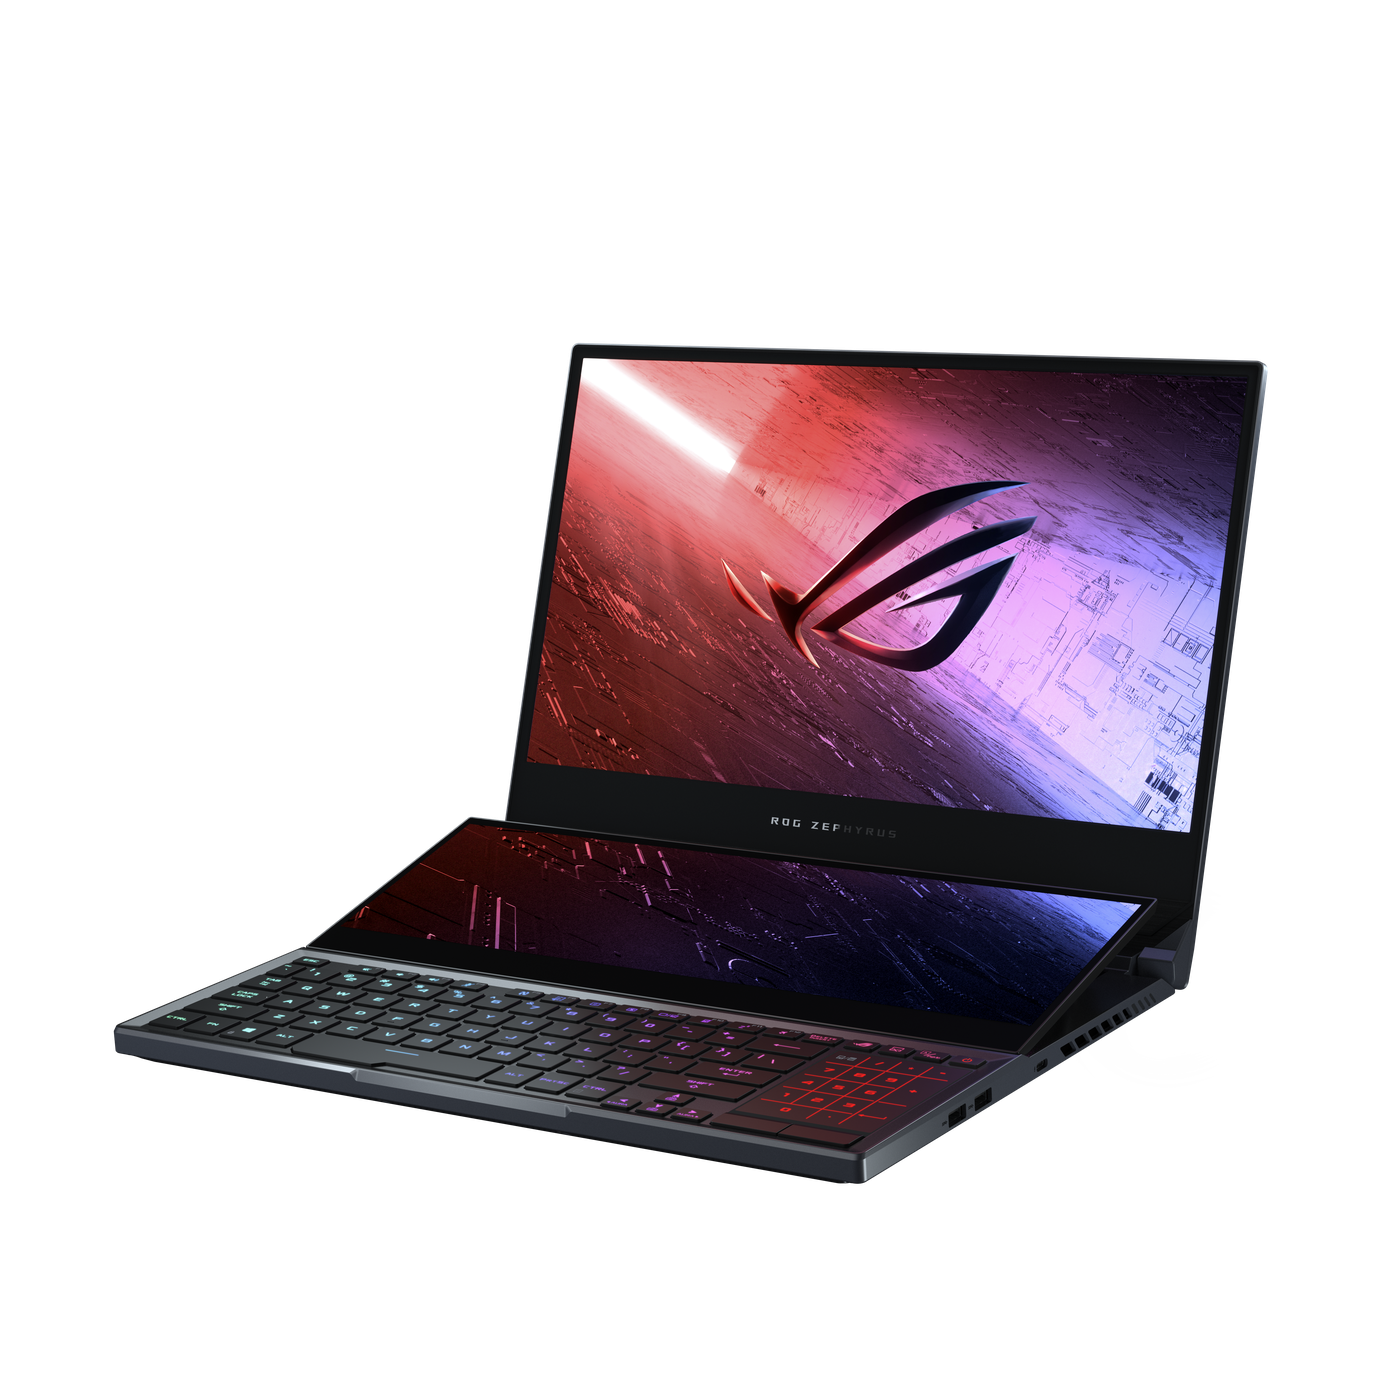 Asus Rog Zephyrus Duo 15 Is A Gaming Laptop With Two Screens The Verge